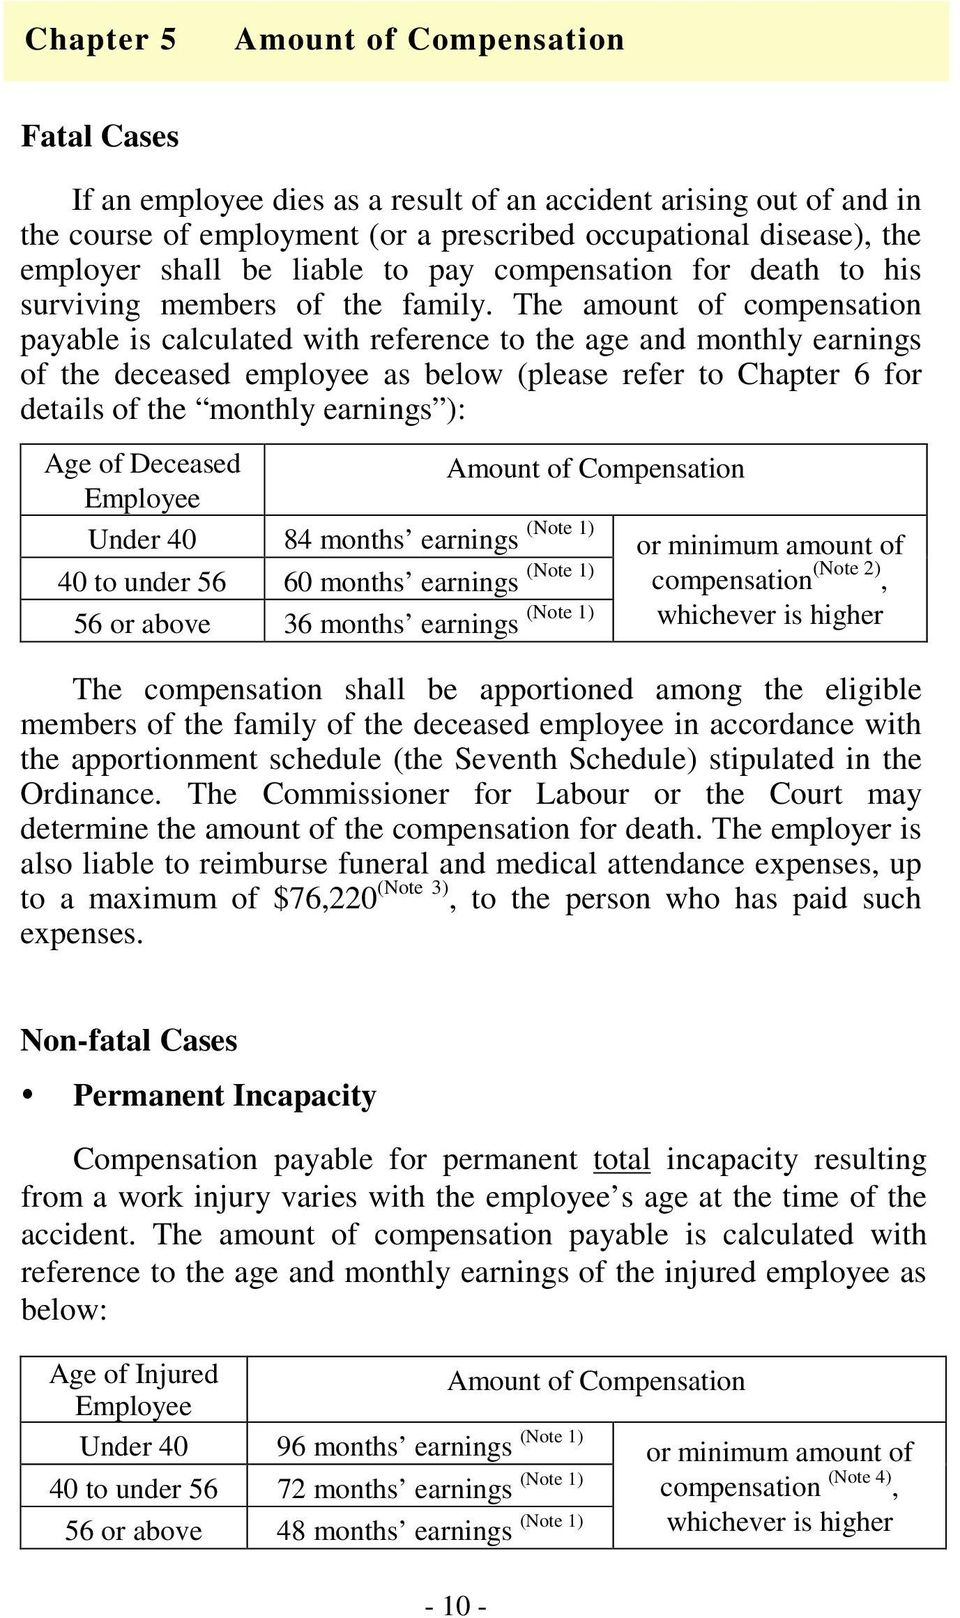 The amount of compensation payable is calculated with reference to the age and monthly earnings of the deceased employee as below (please refer to Chapter 6 for details of the monthly earnings ): Age